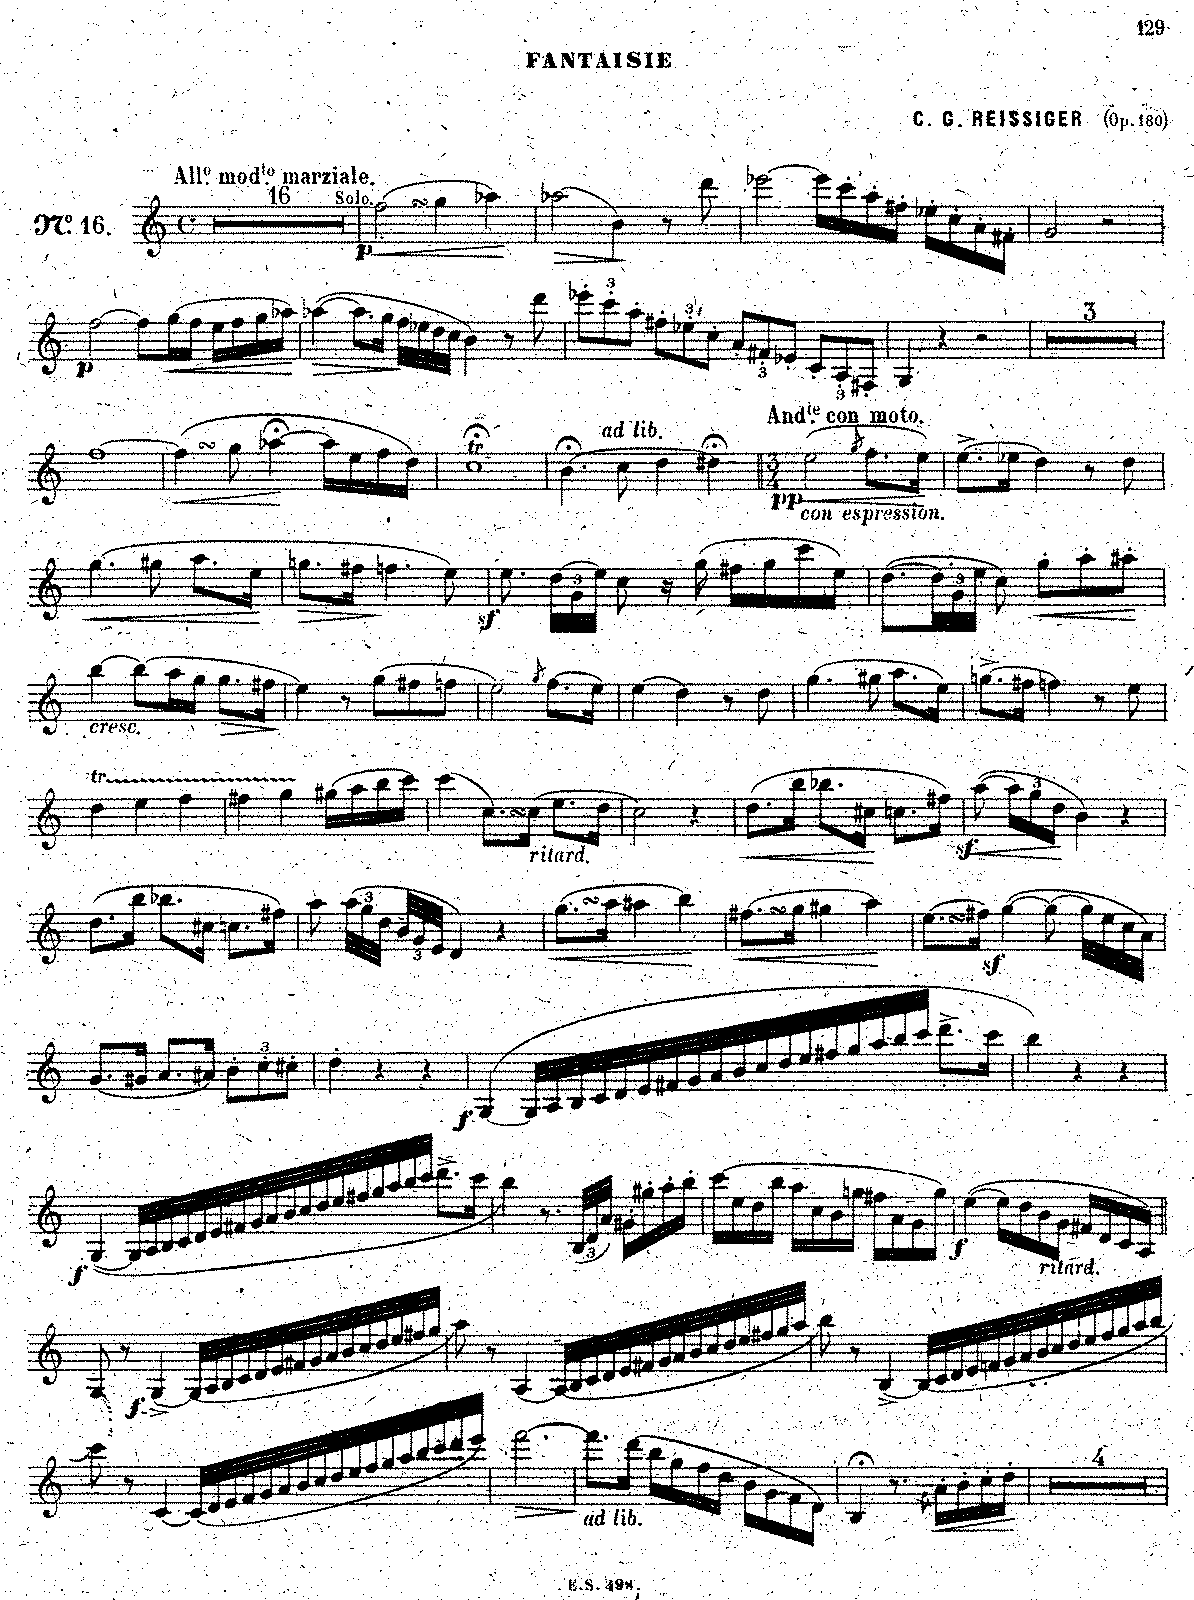 PMLP537311-Clarinet Coll Magnani-Method Reiss Fant 180.pdf